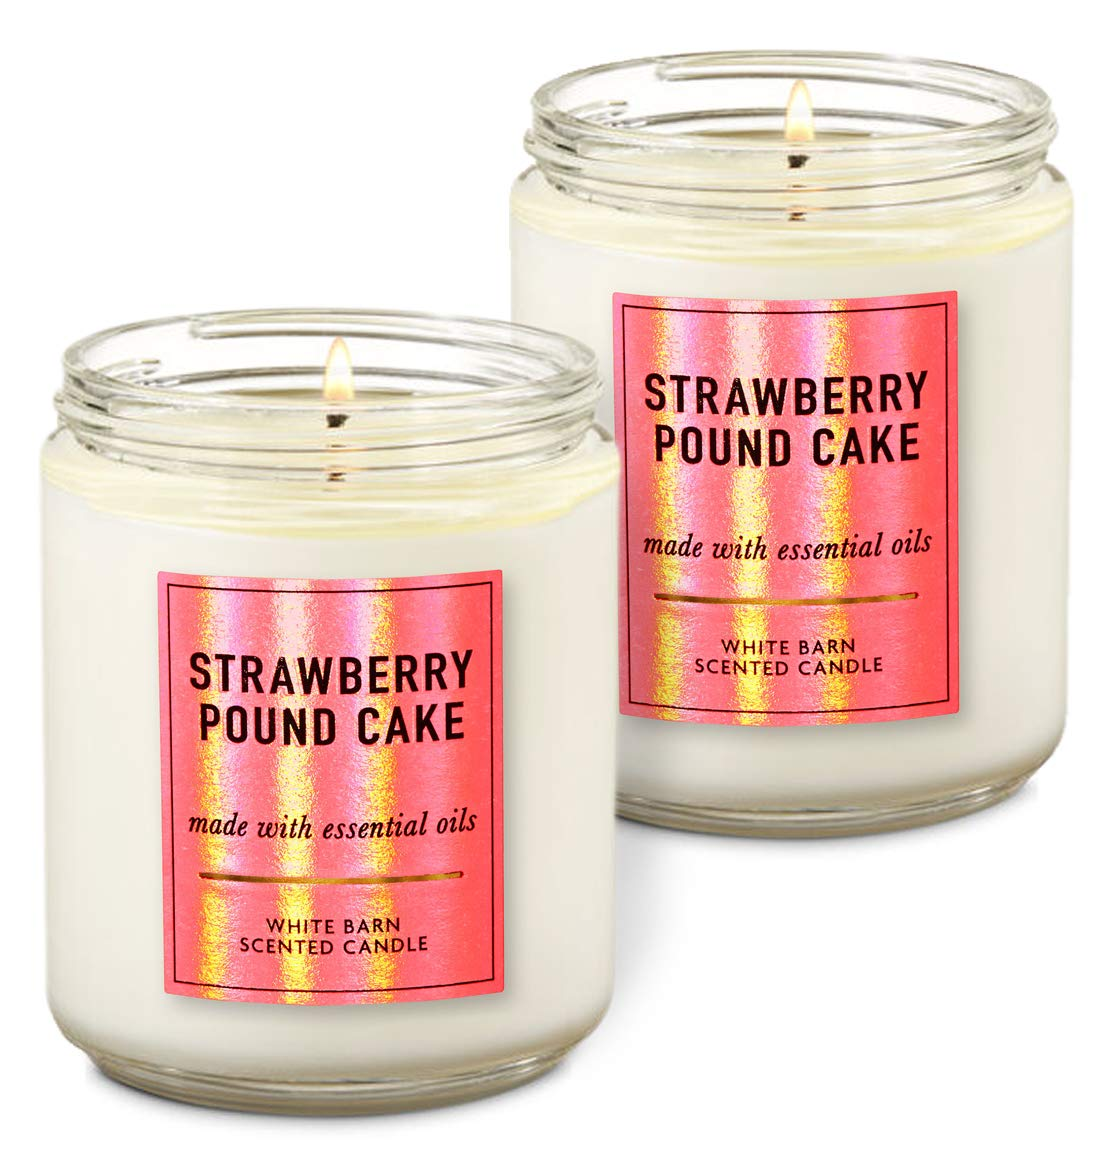 198 g each Pack of 2 Bath /& Body Works In The Stars Single Wick Scented Candle with Essential Oils 7 oz